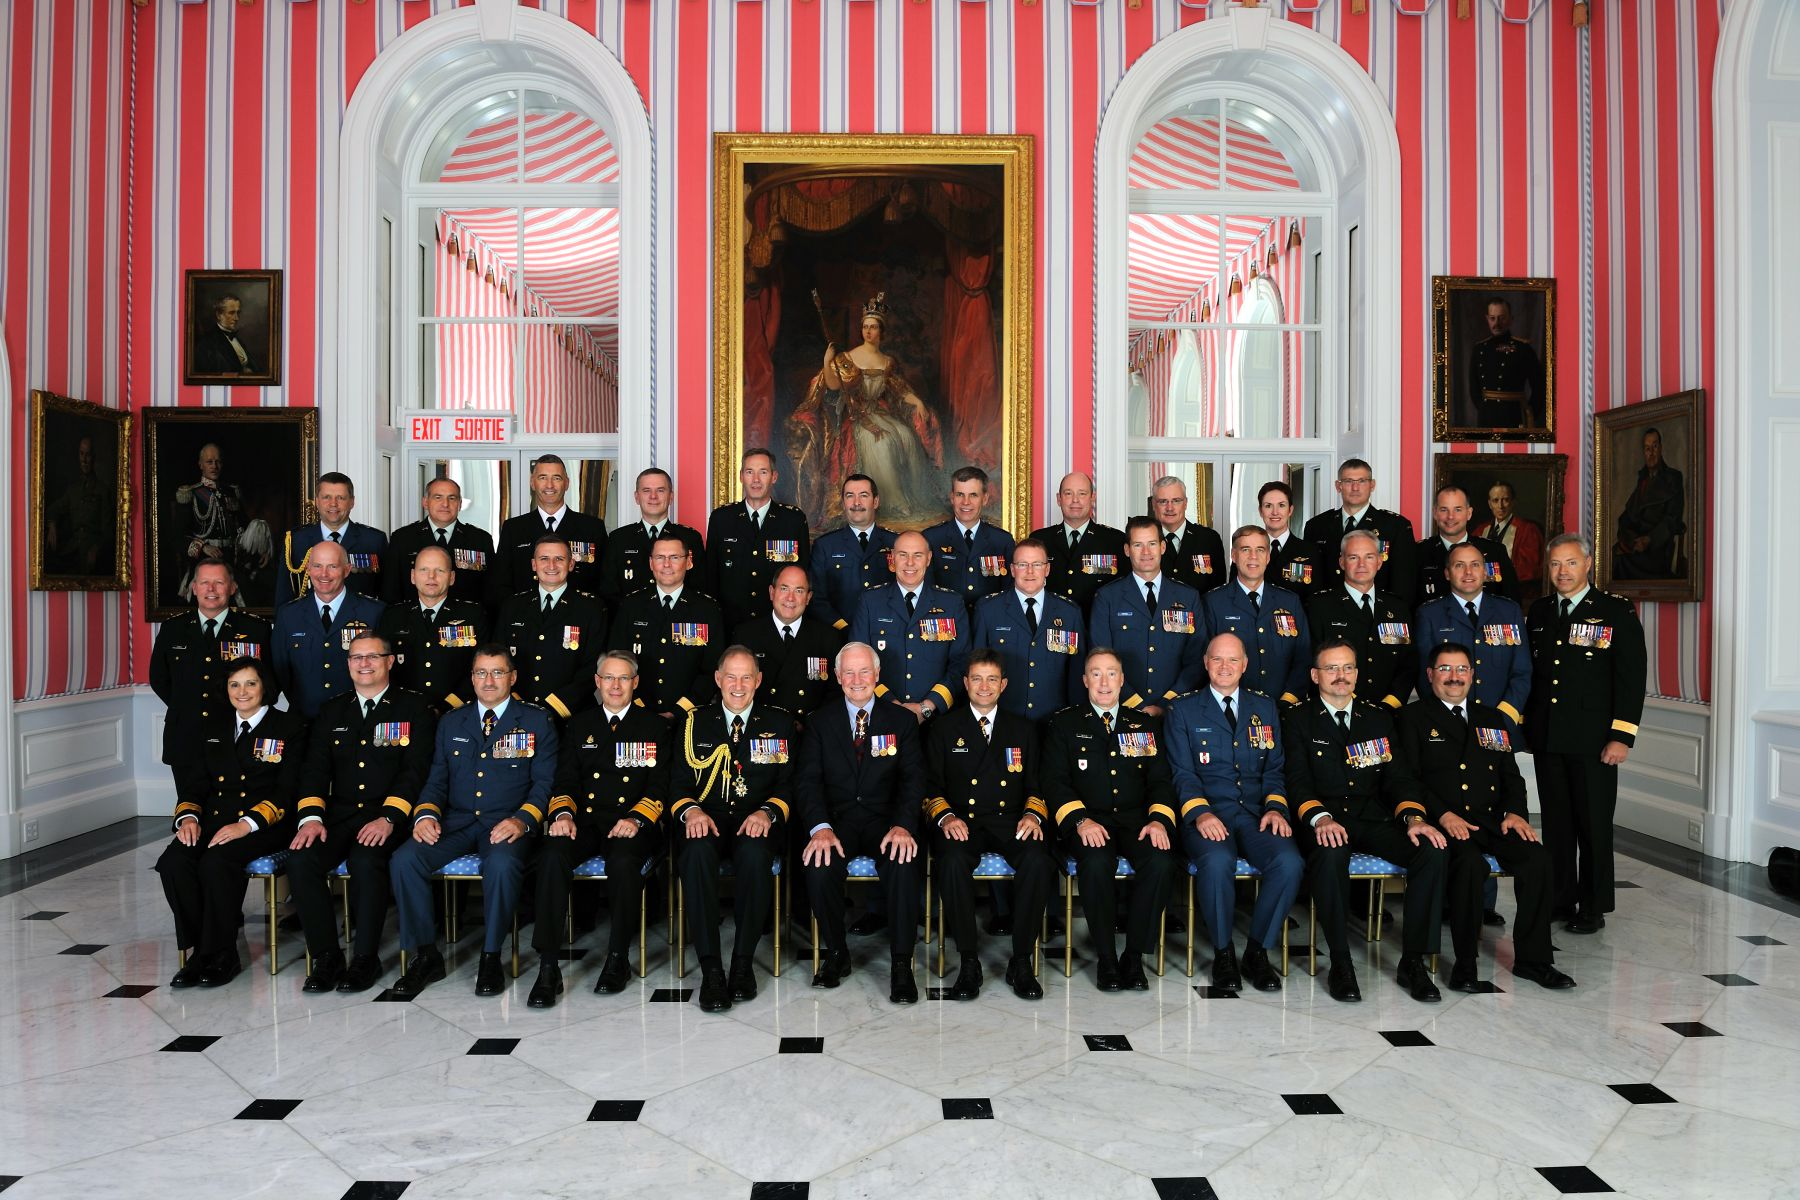 Twenty-seven Canadian Forces members received their scrolls from the Governor General and the Chief of the Defense Staff.